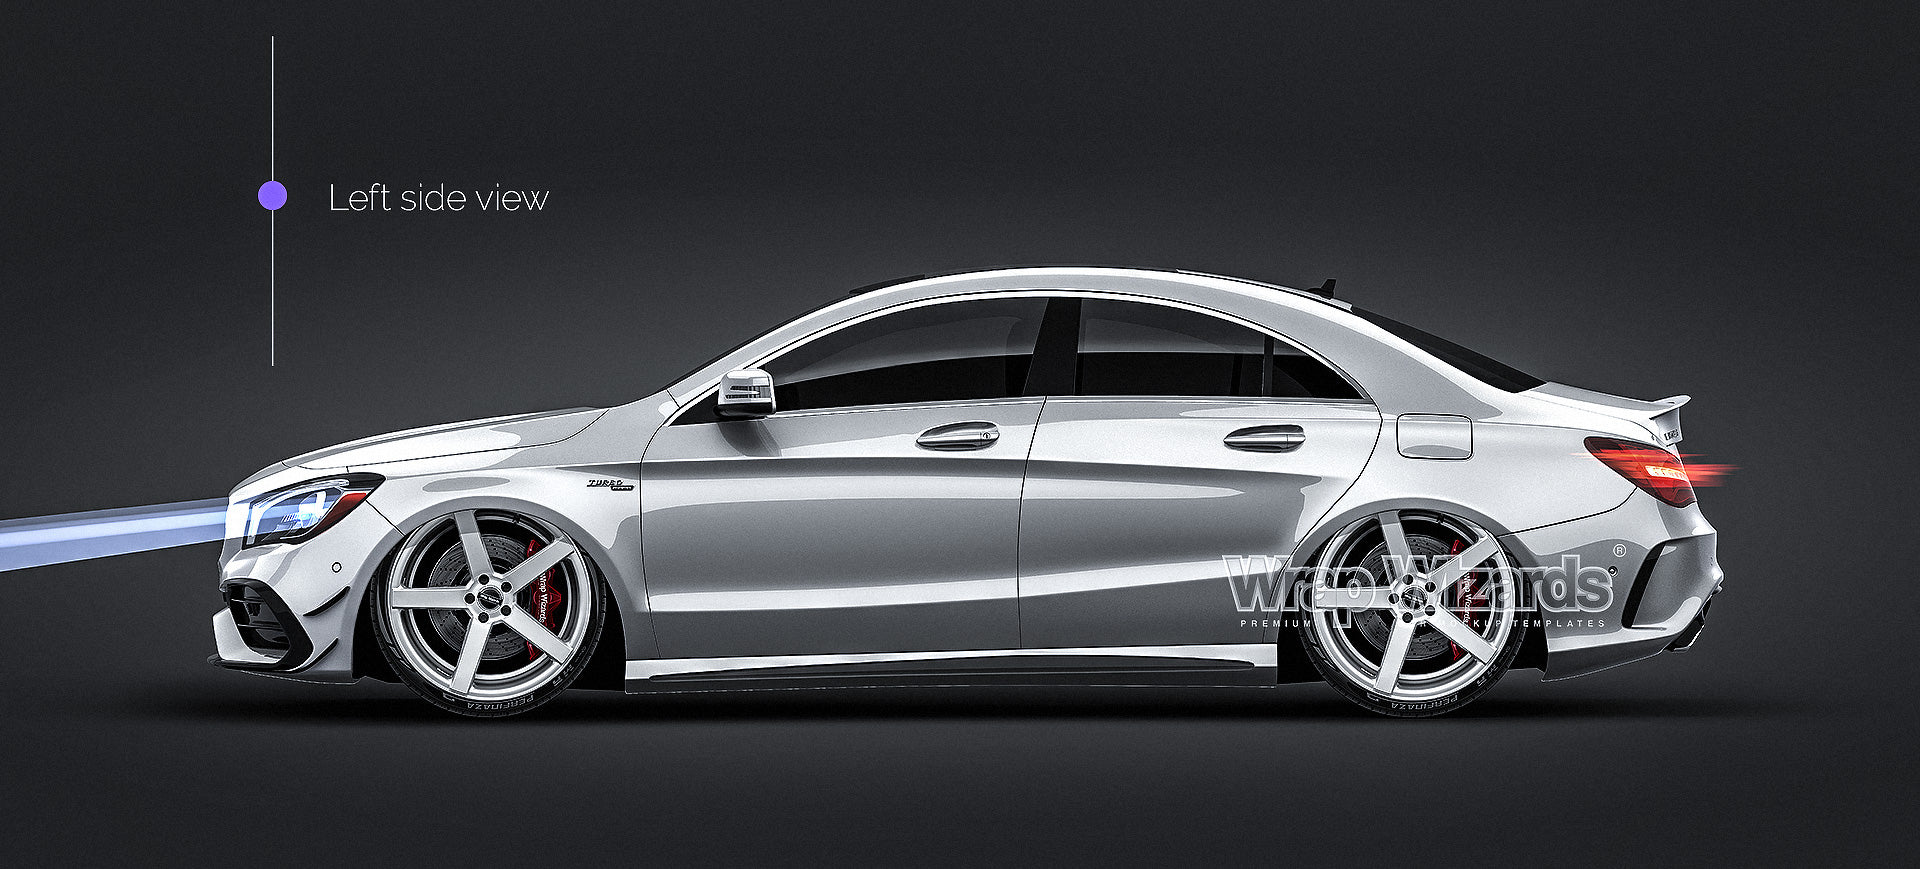 Mercedes Benz CLA 45 AMG 2017 all sides Car Mockup Template.psd